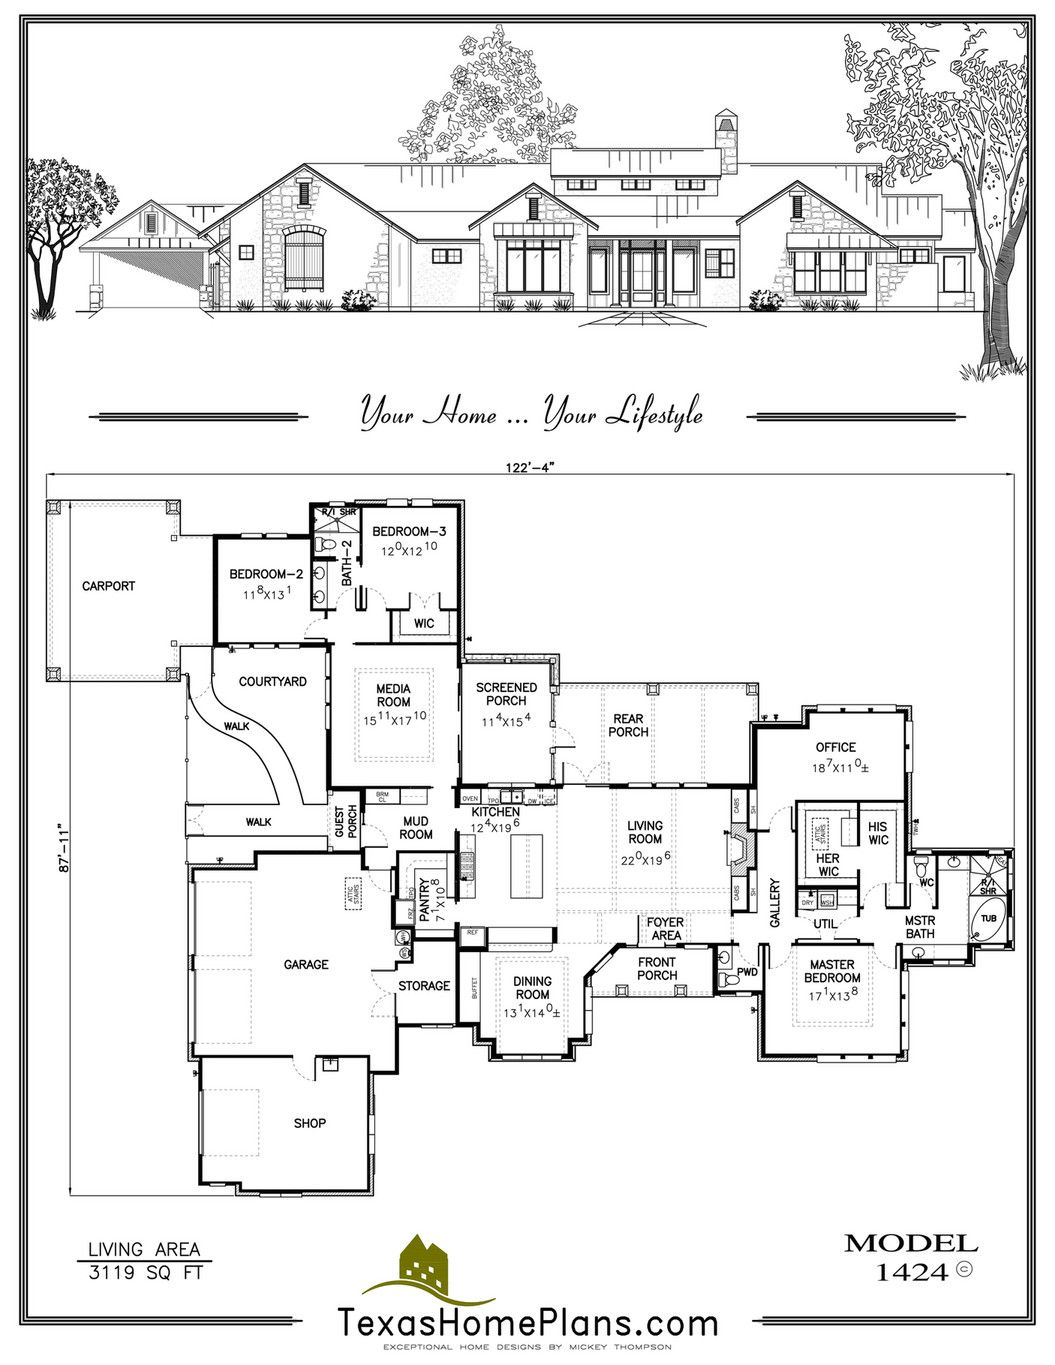 Texas Home Plans Texas Farm Homes Page 126 127 Multigenerational House Plans House Plans One Level House Plans